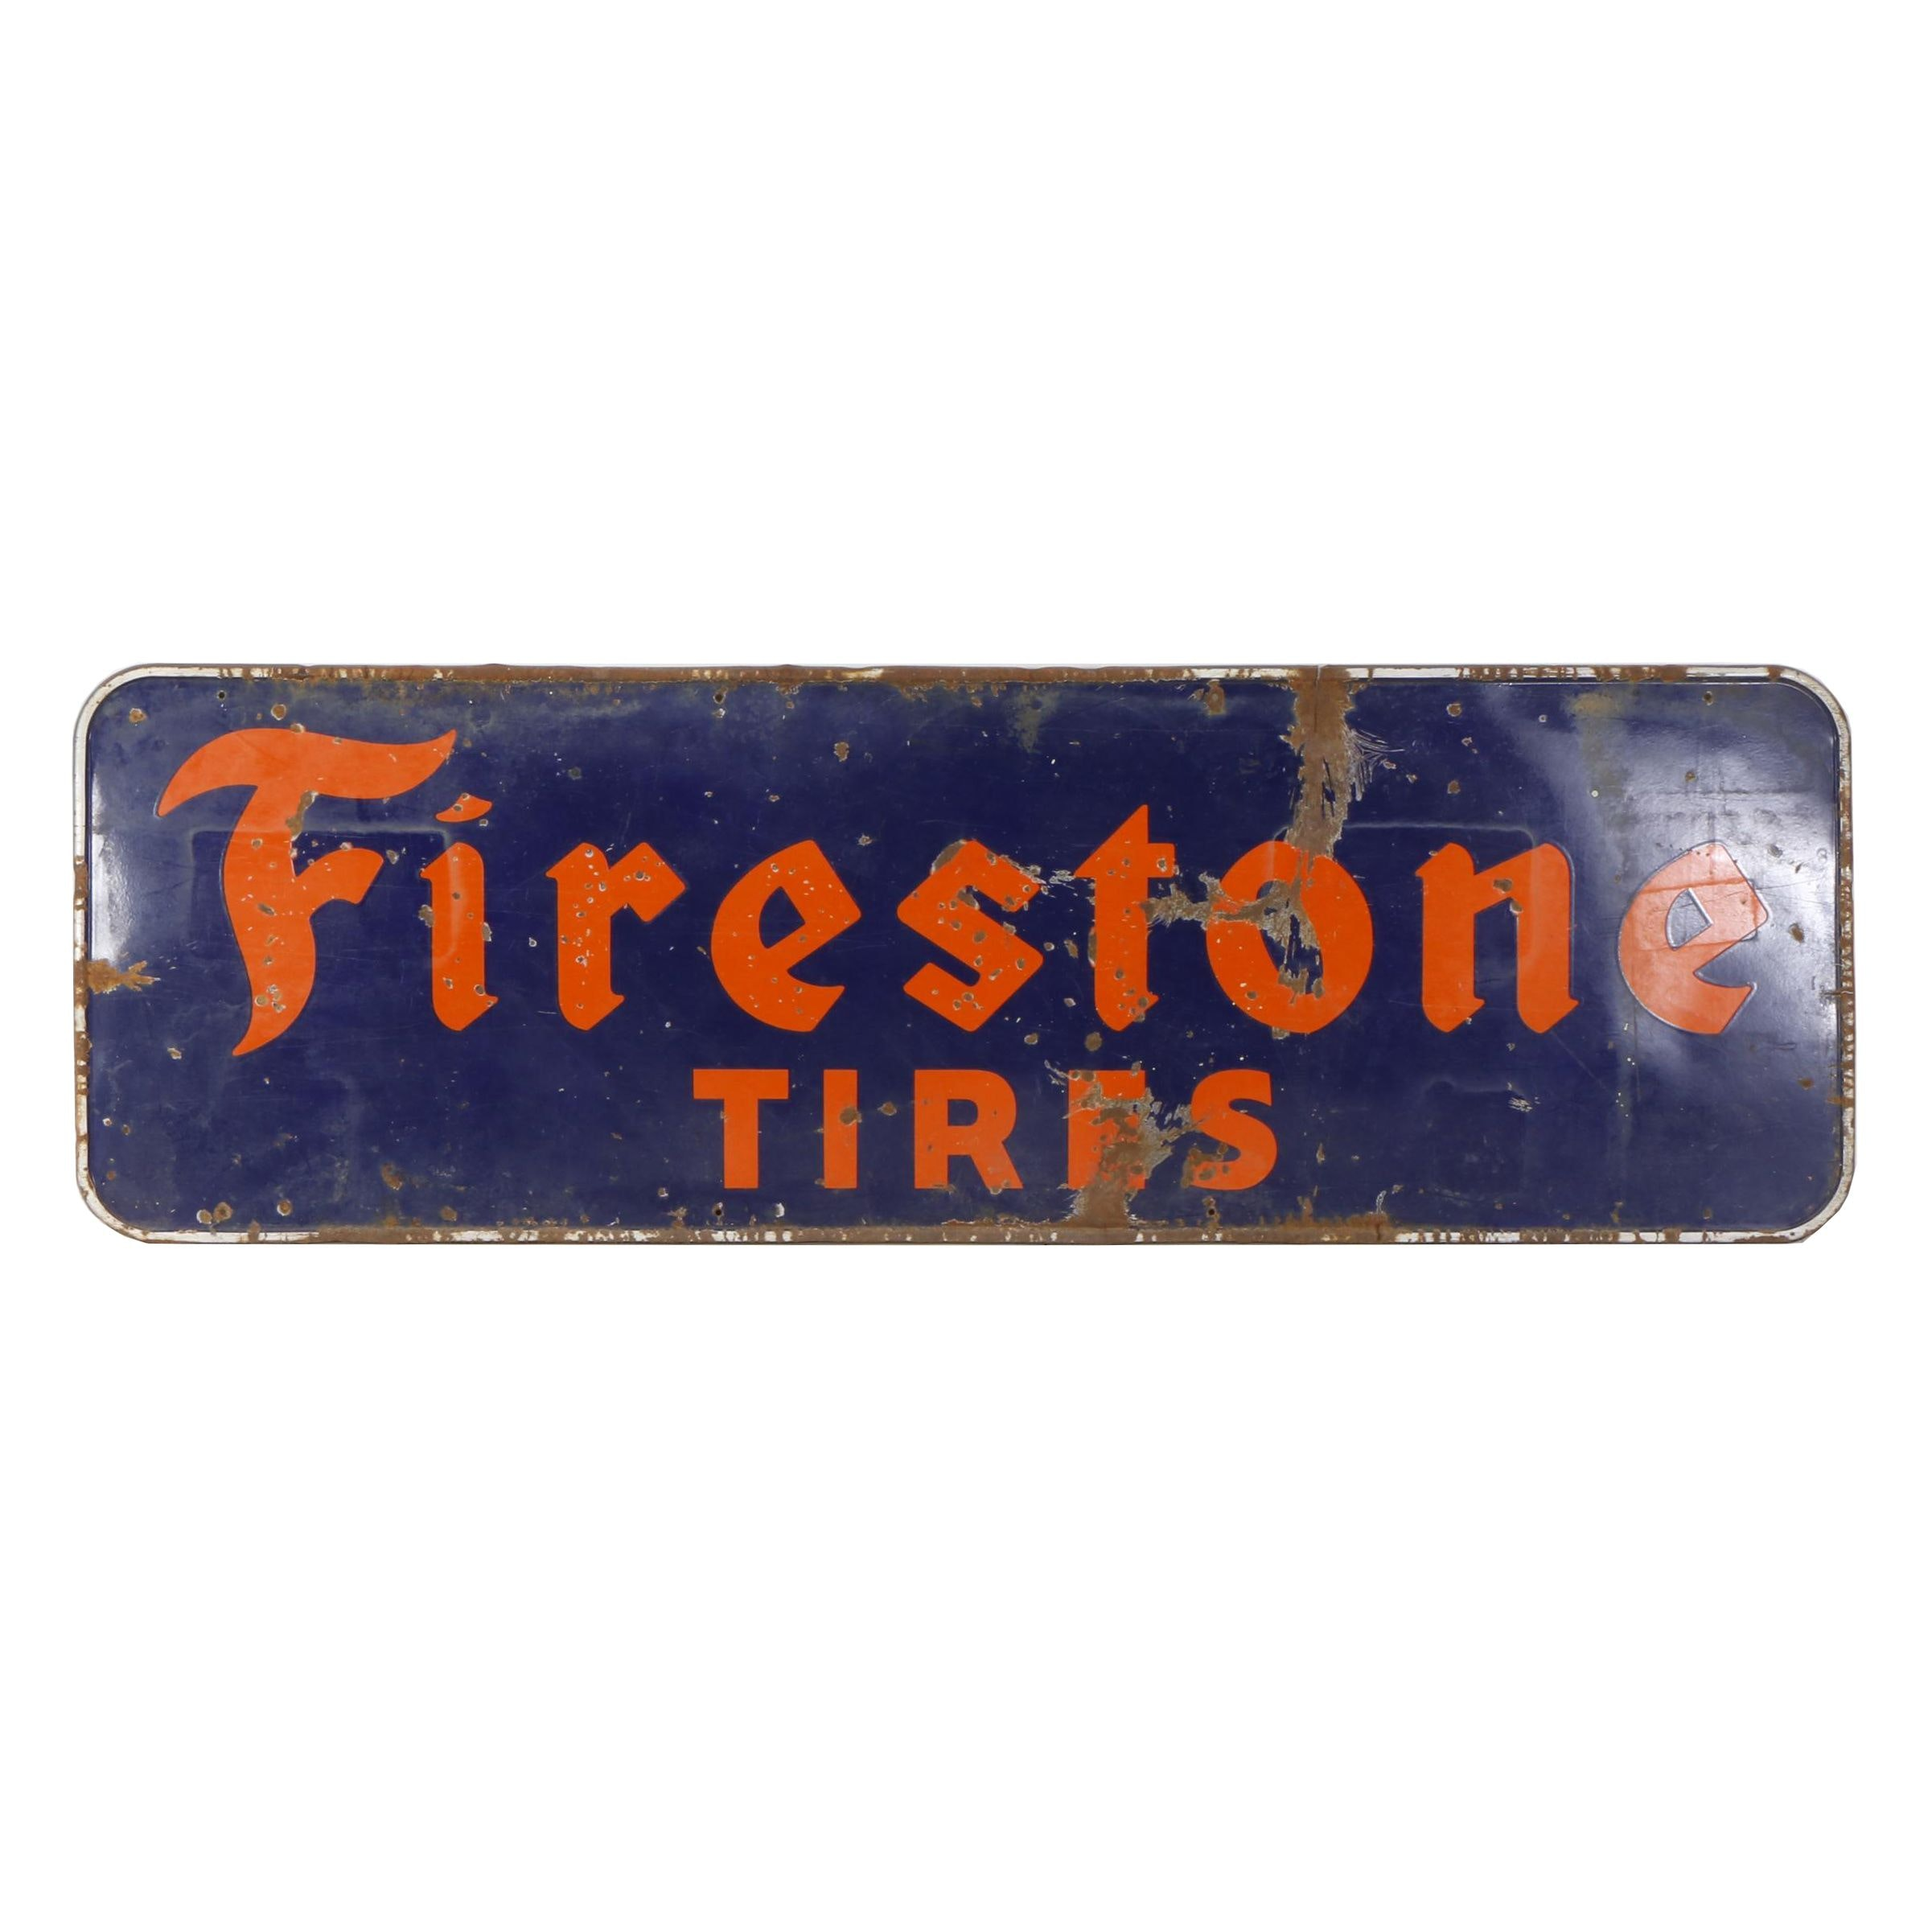 1940s-1950s Firestone Metal Advertising Sign